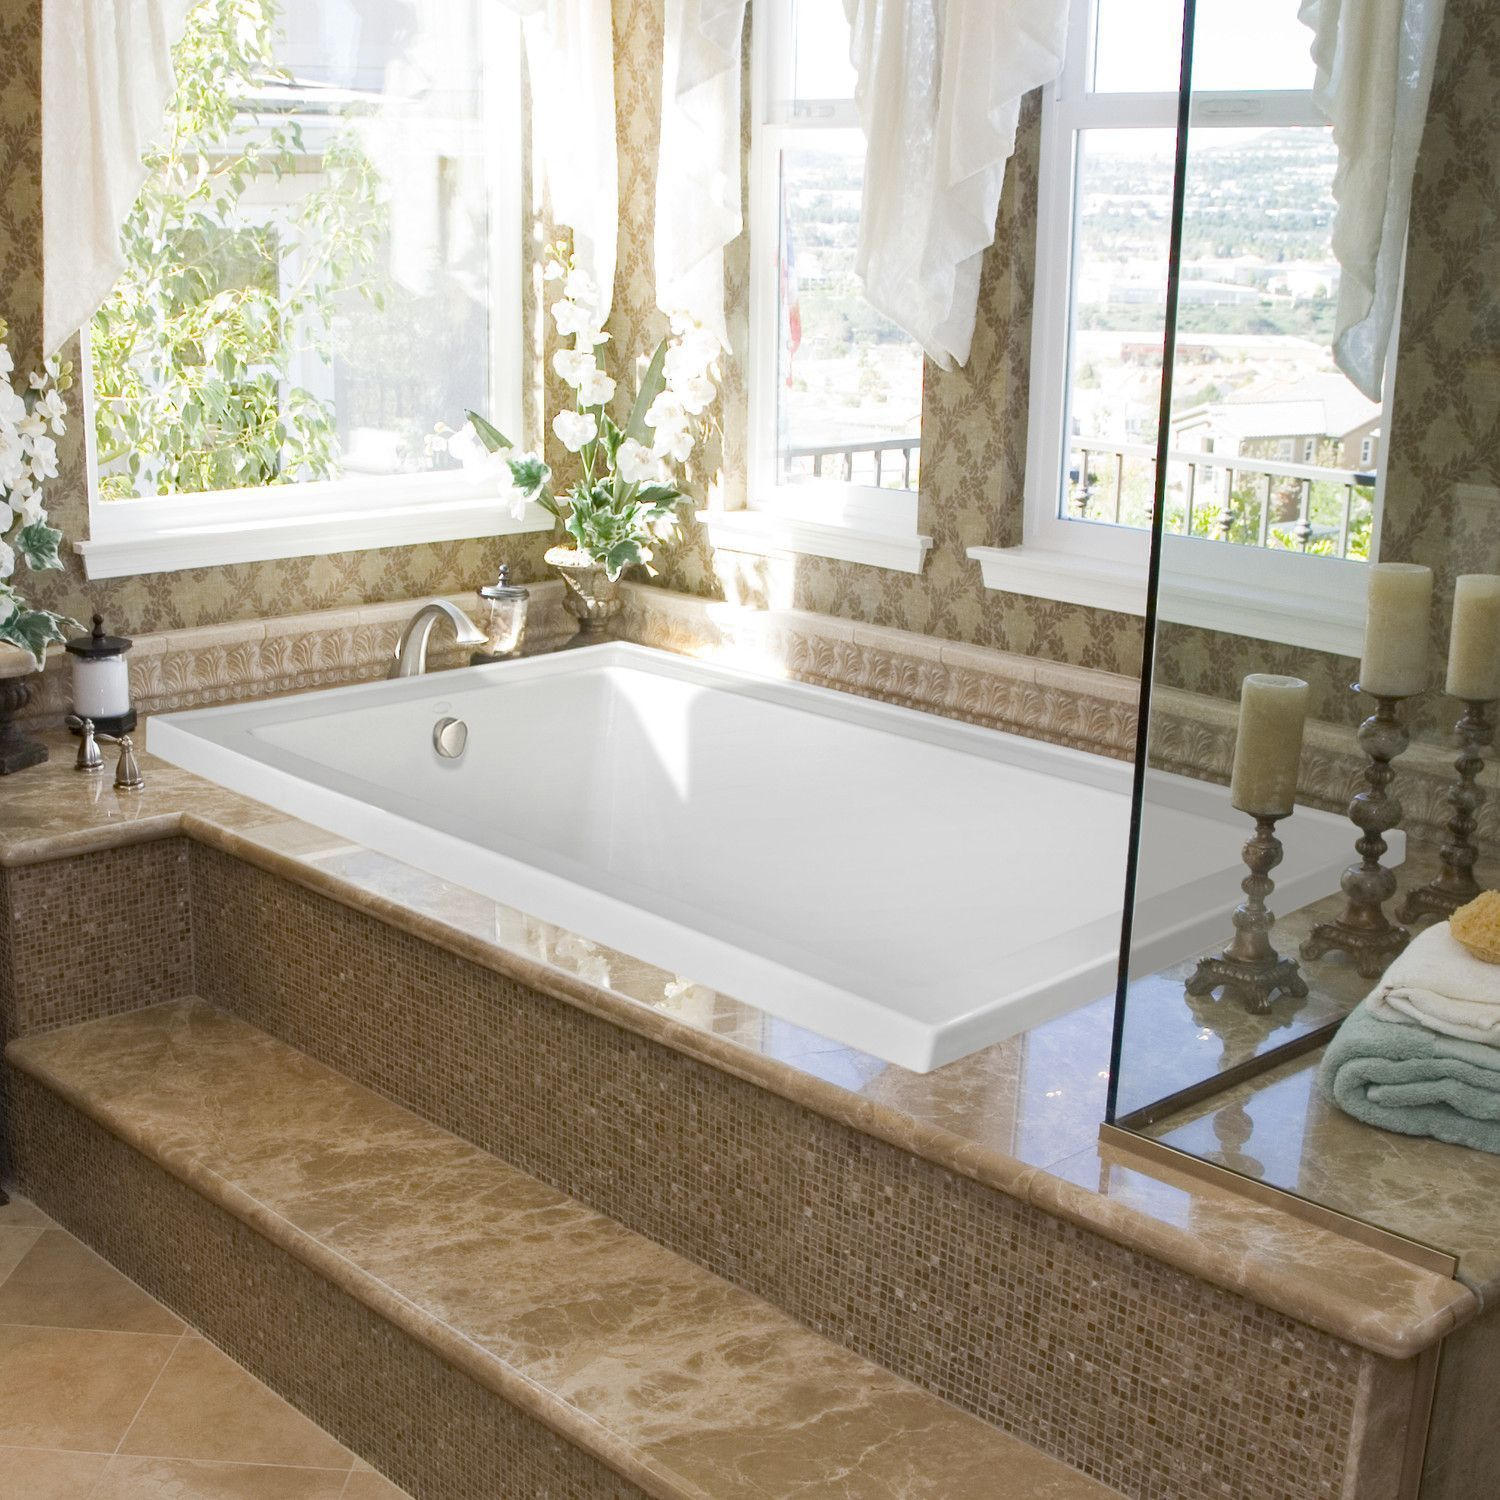 Upgrade Your Bathroom with Whirlpool Tub: Mosaic Tile Tub Surround ...